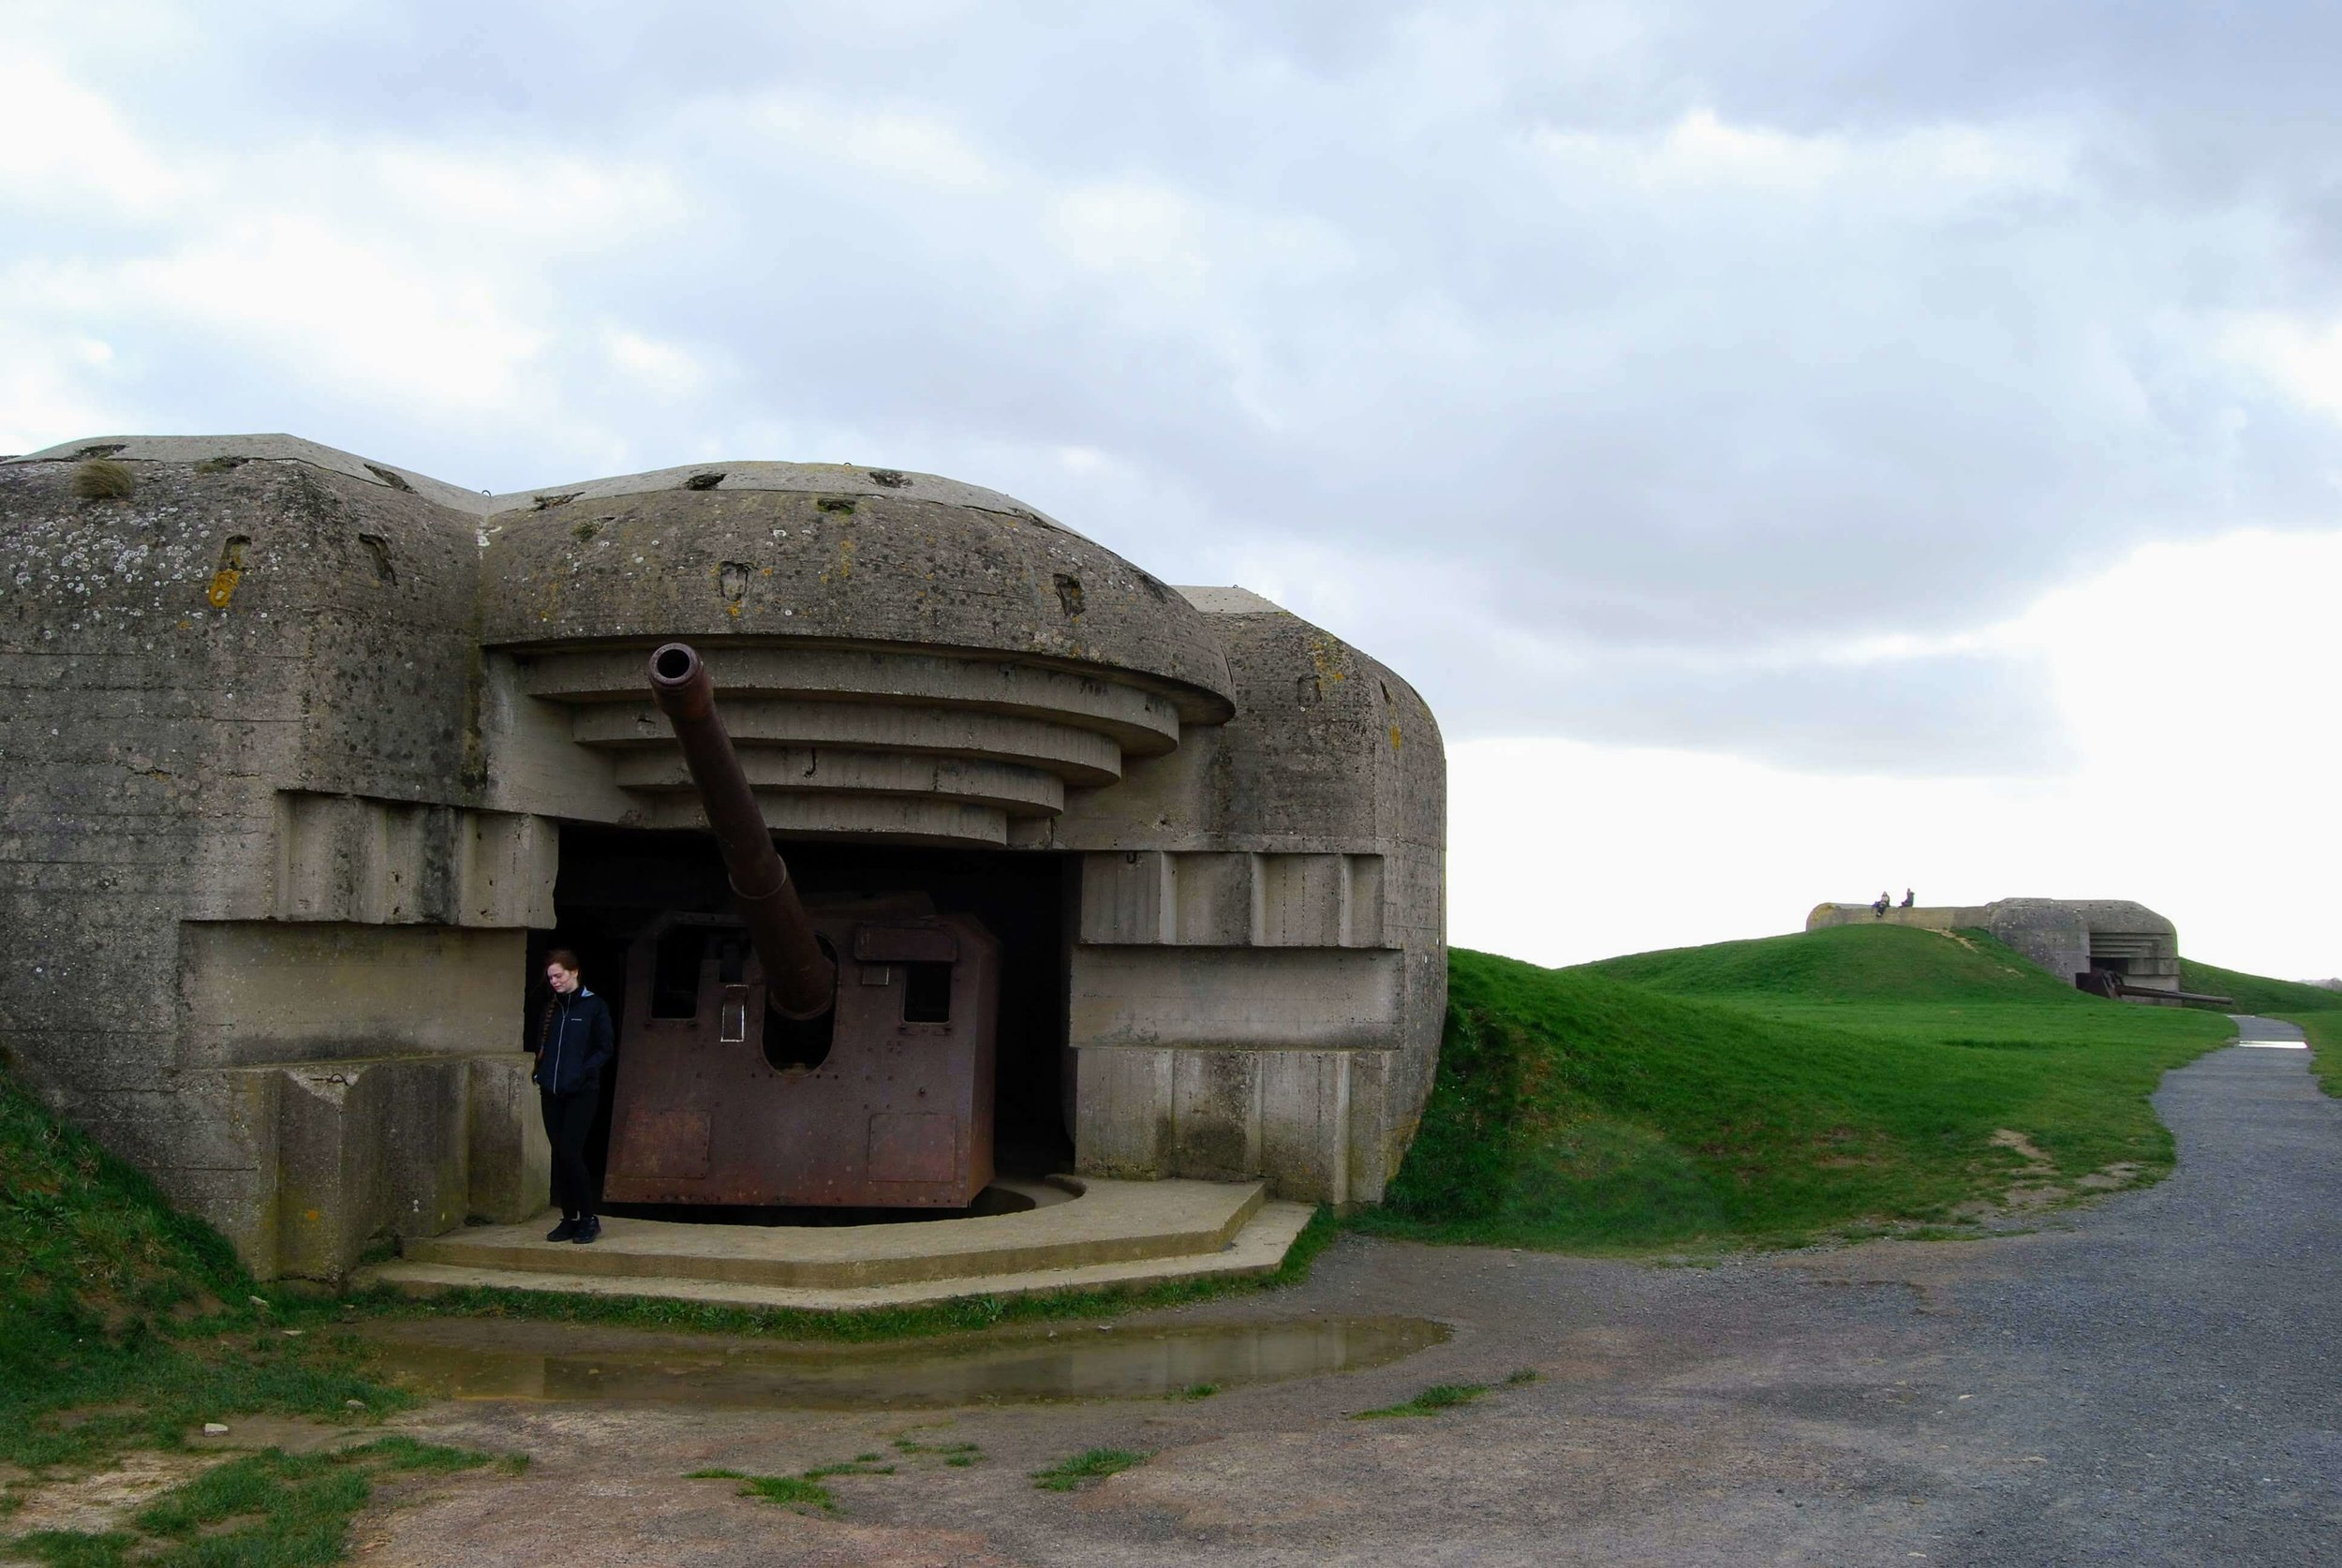 German guns at Longues sur Mer